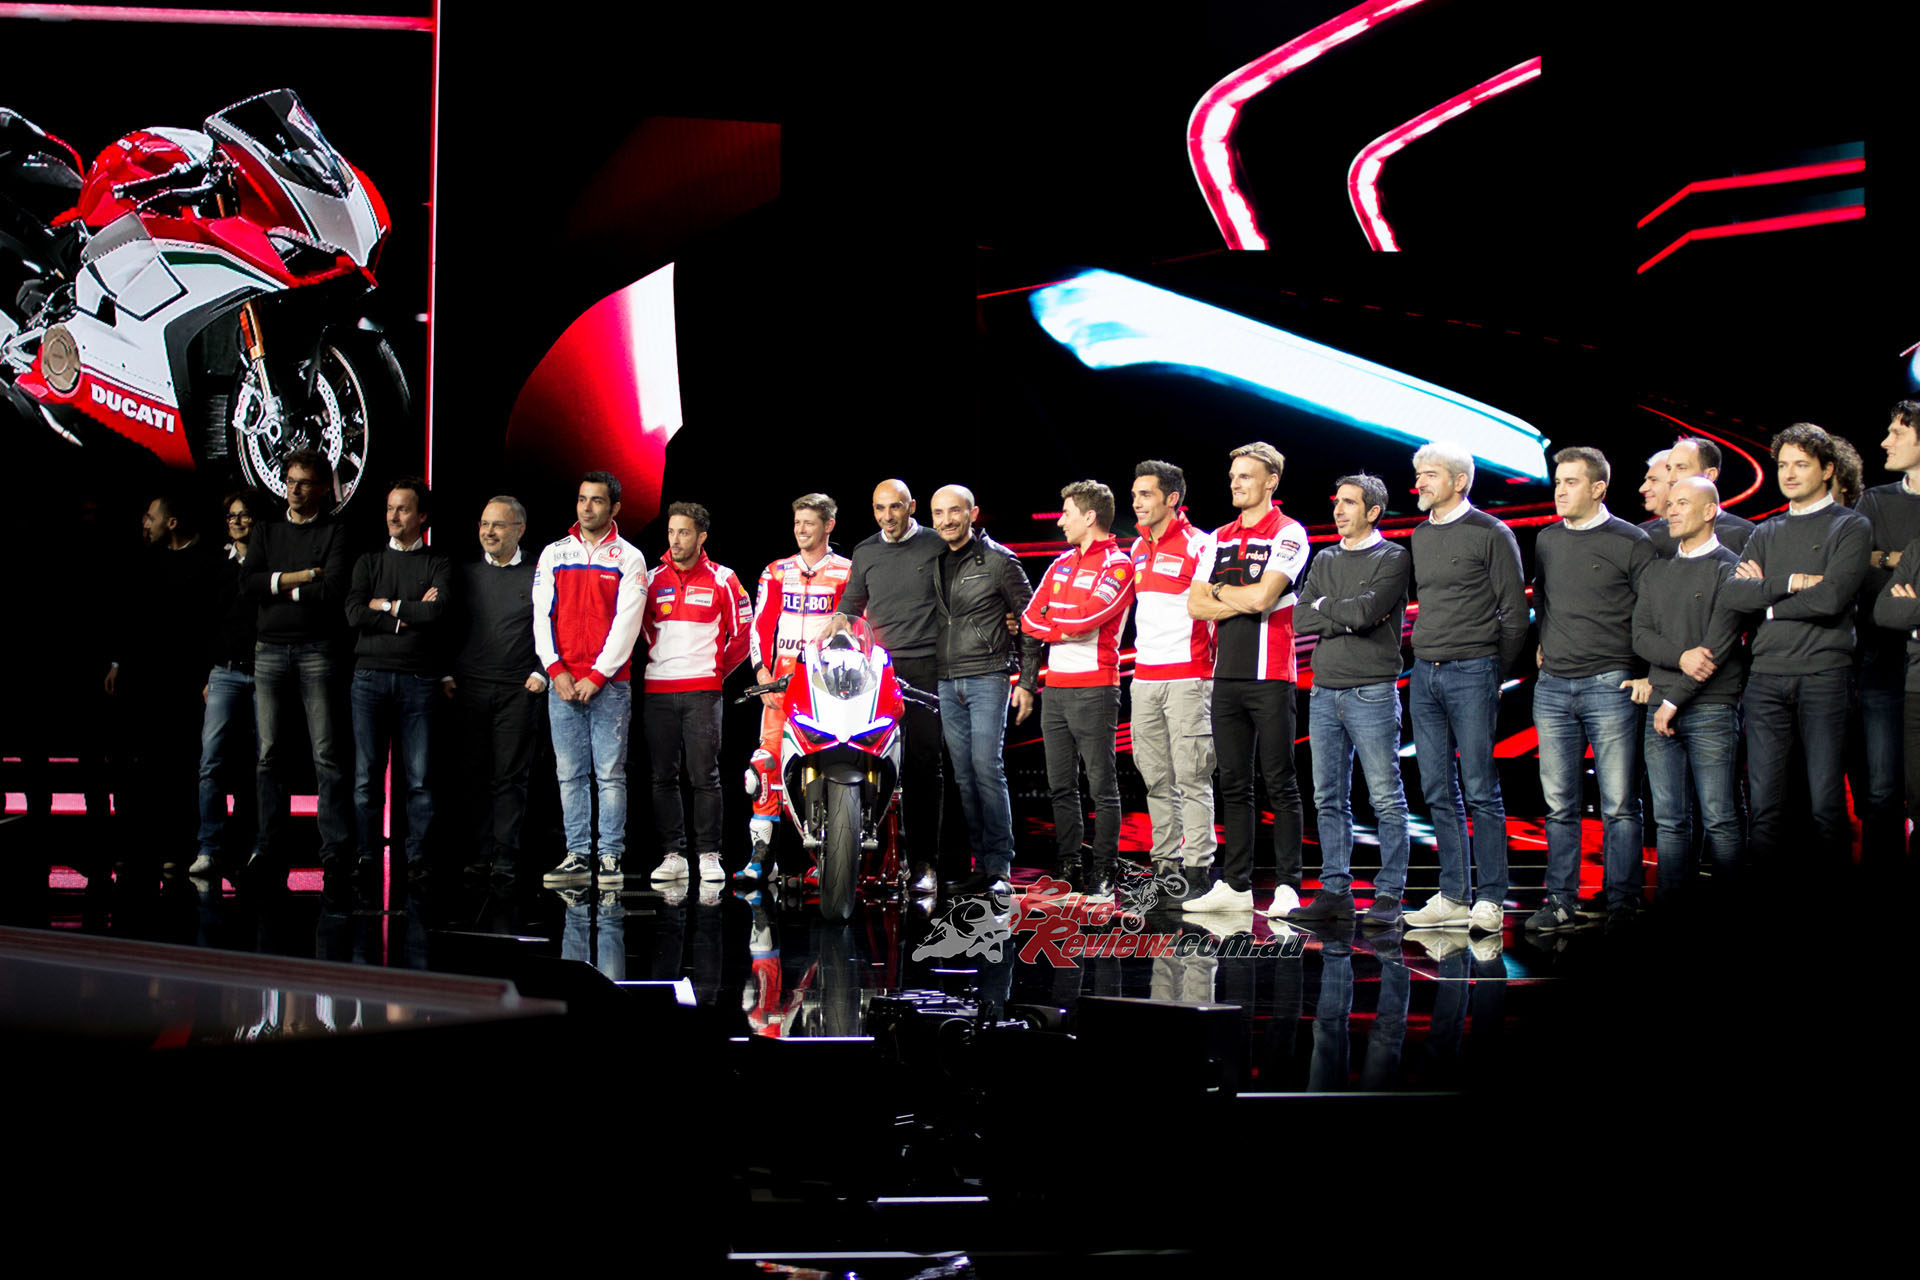 There was plenty of race representation in the Ducati unveilings